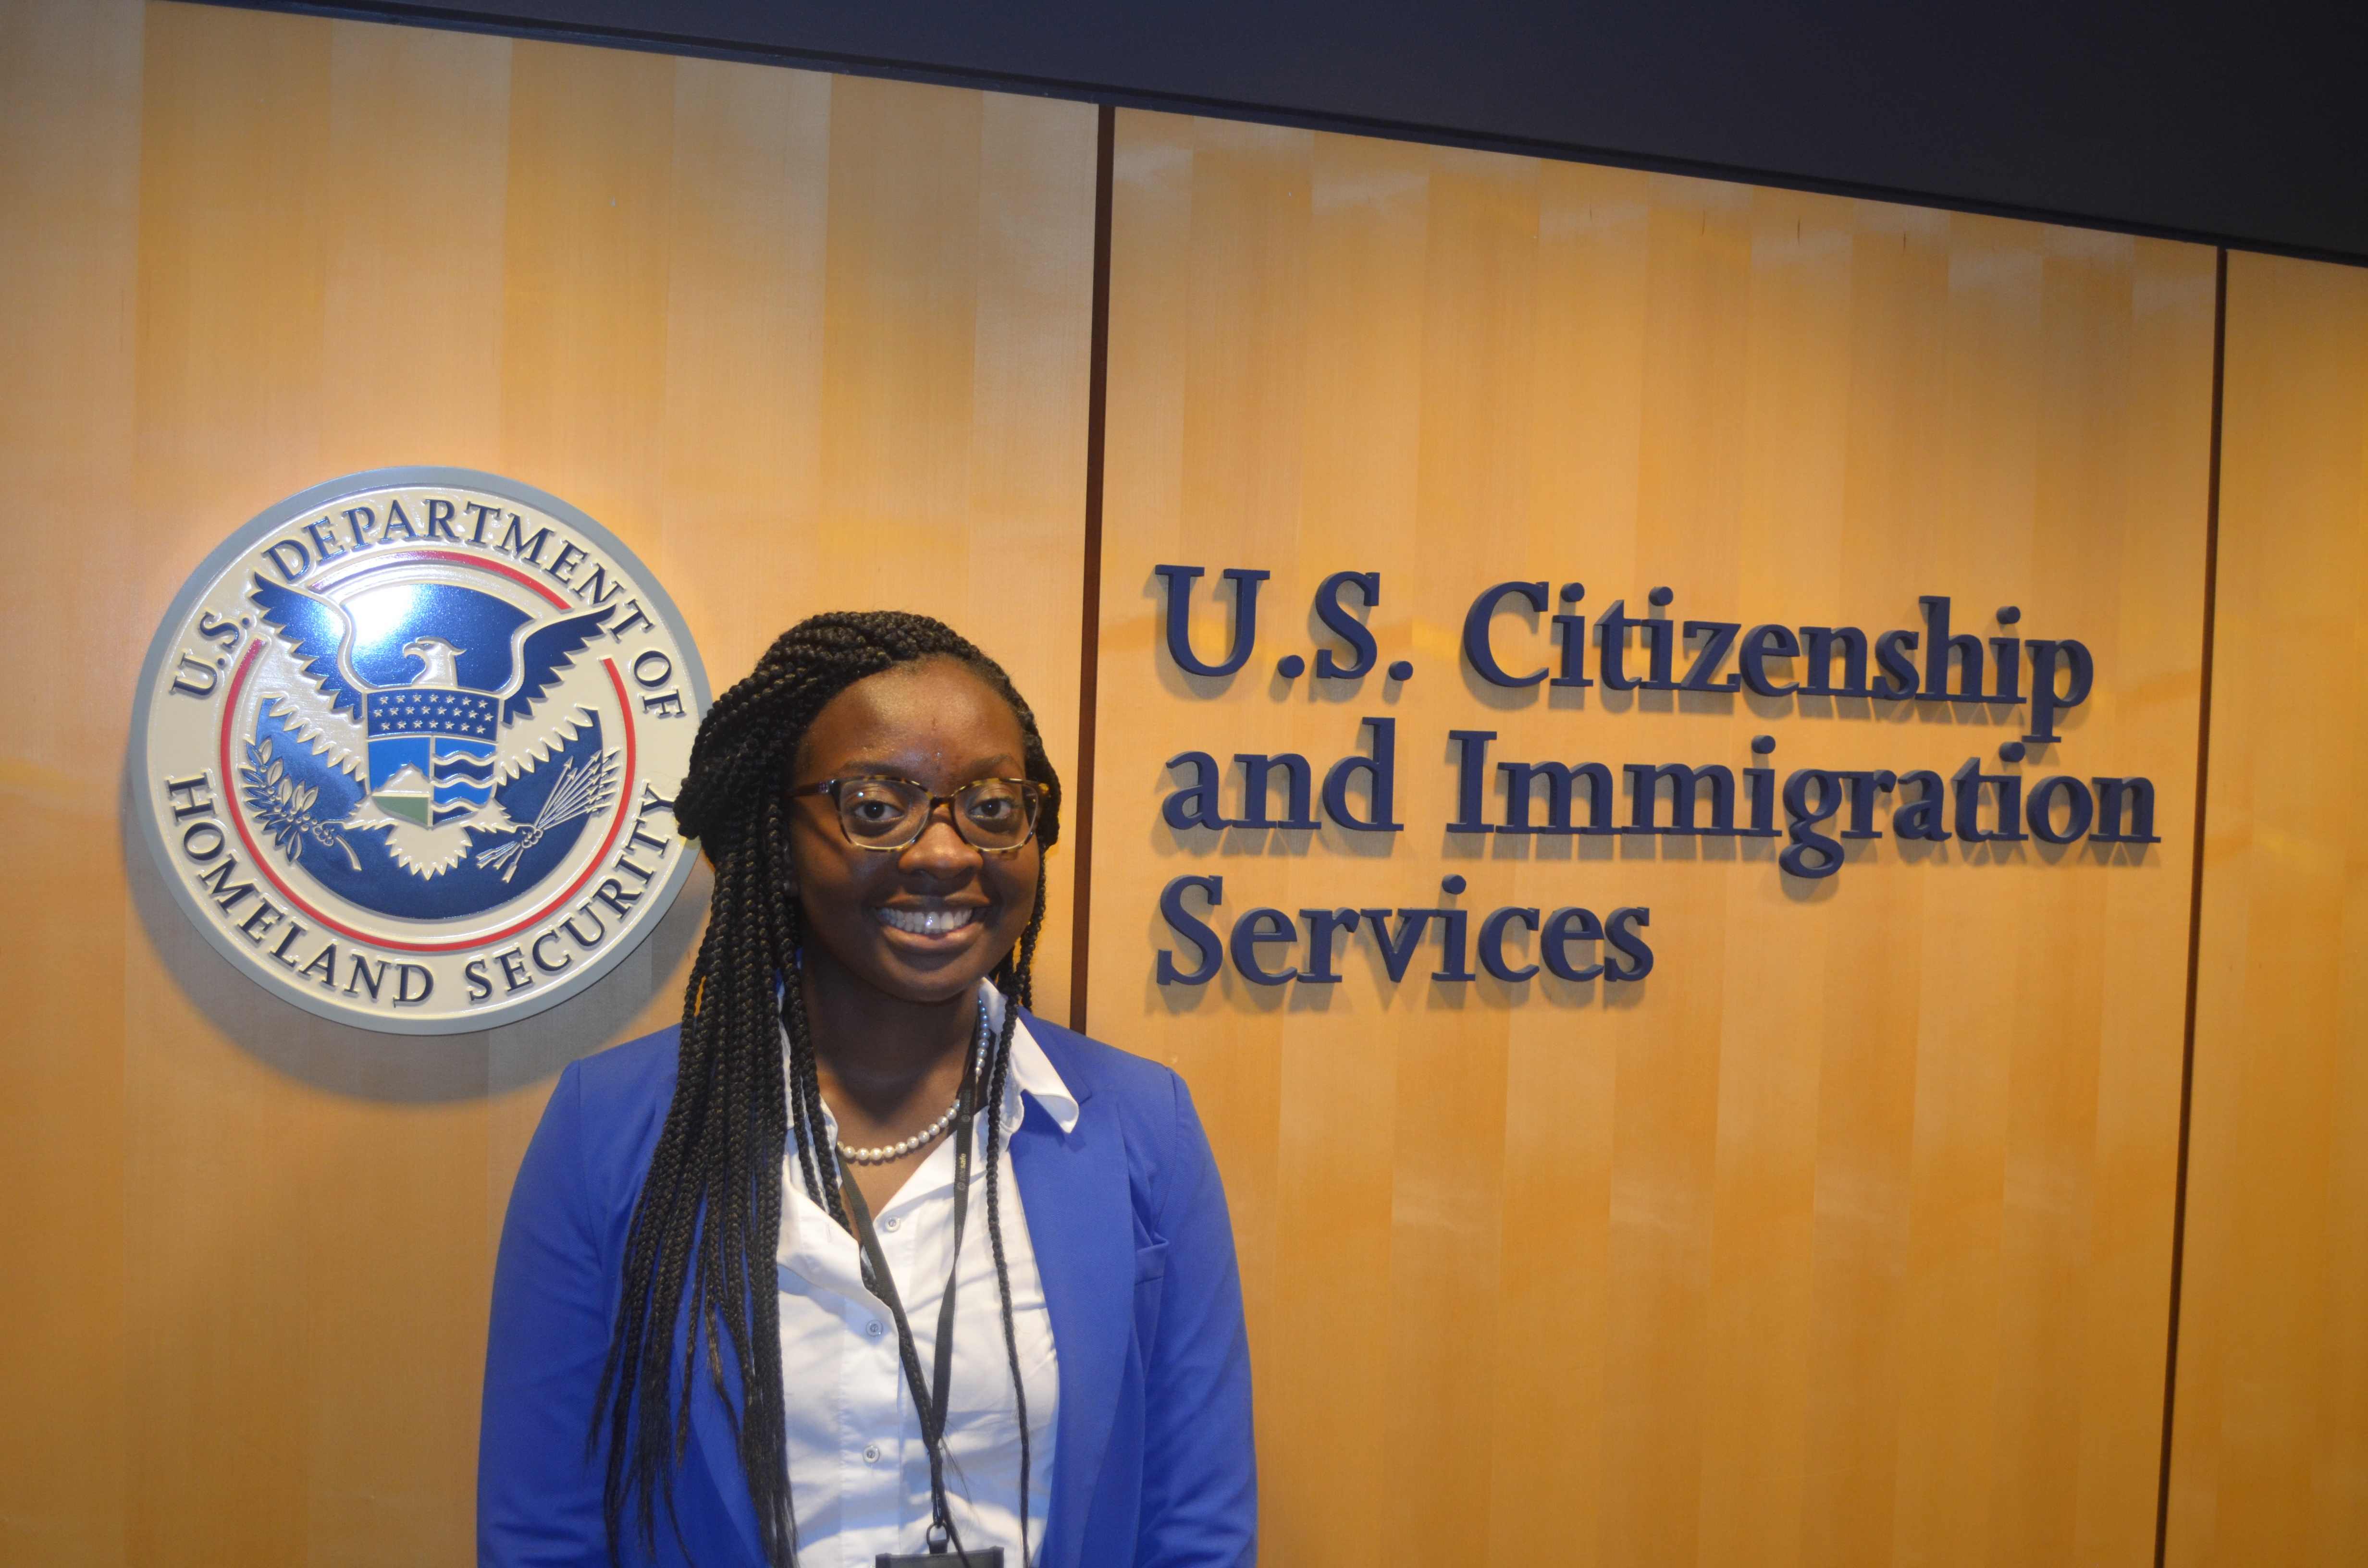 Internship Blog Series: U.S. Citizenship and Immigration Services, U.S. Department of Homeland Security: U.S.  Citizenship and Immigration Services (USCIS),Office of Privacy